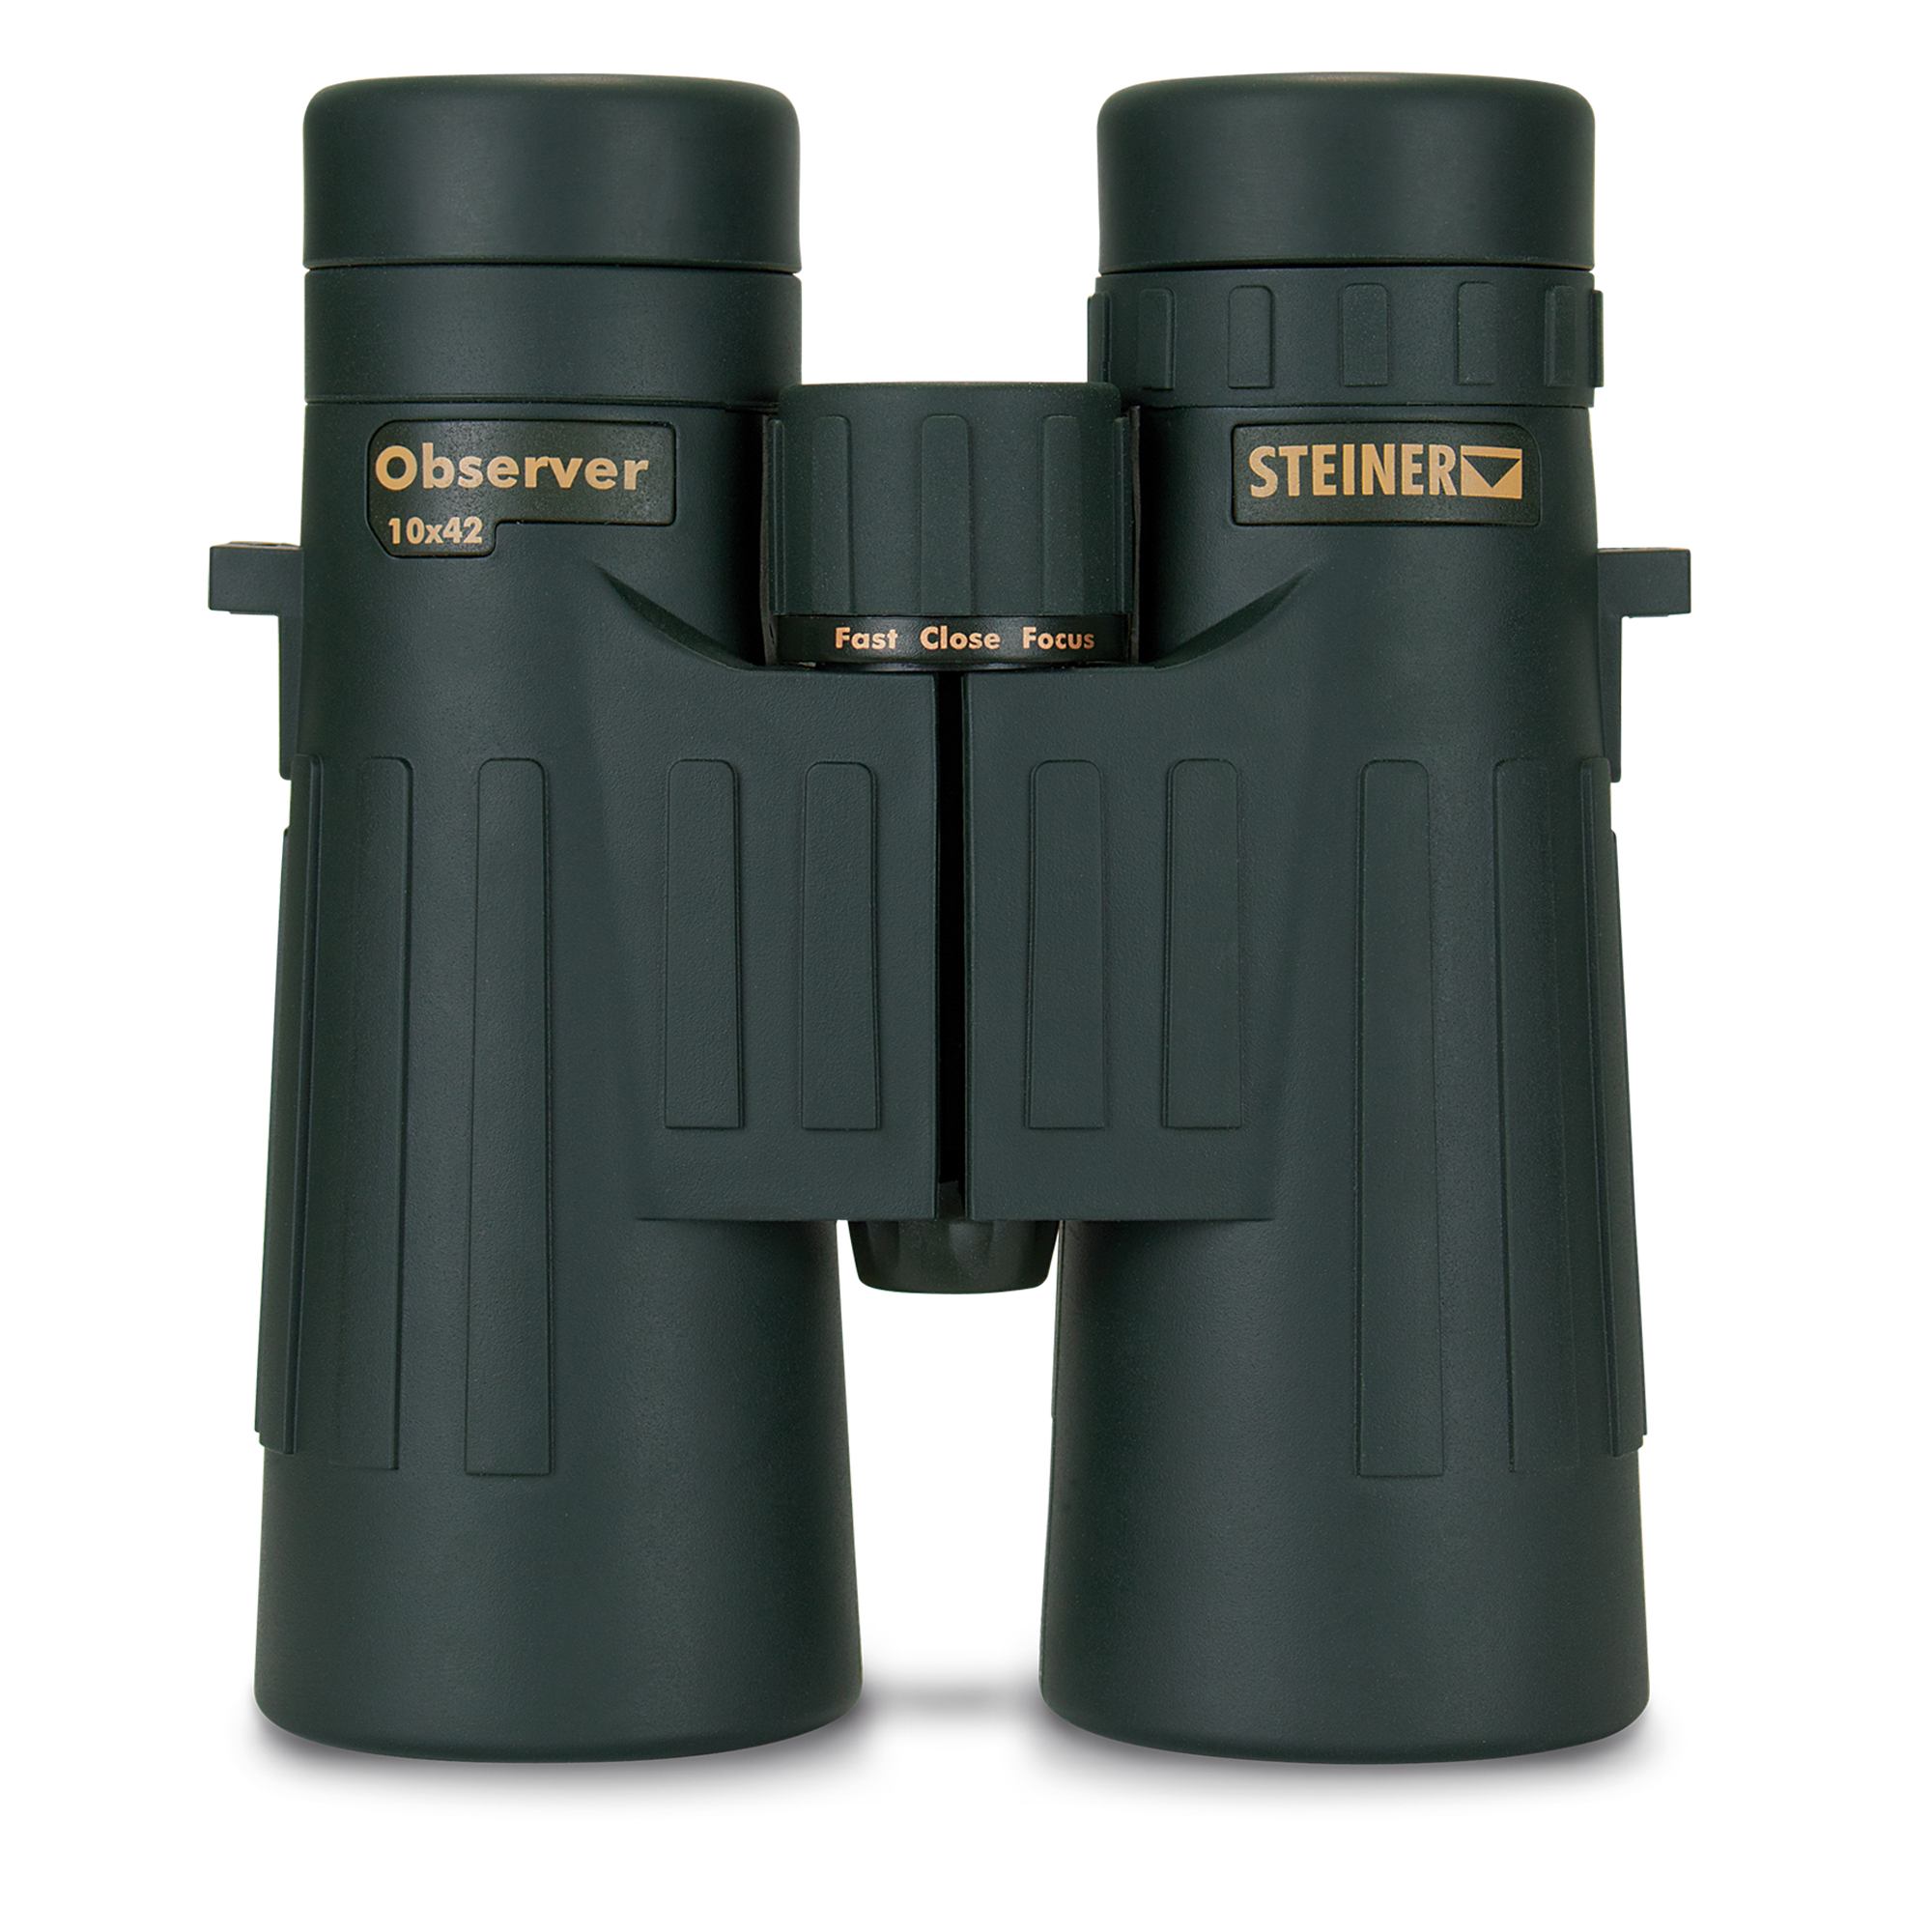 Steiner Observer 10x42 Binocular (out of stock)